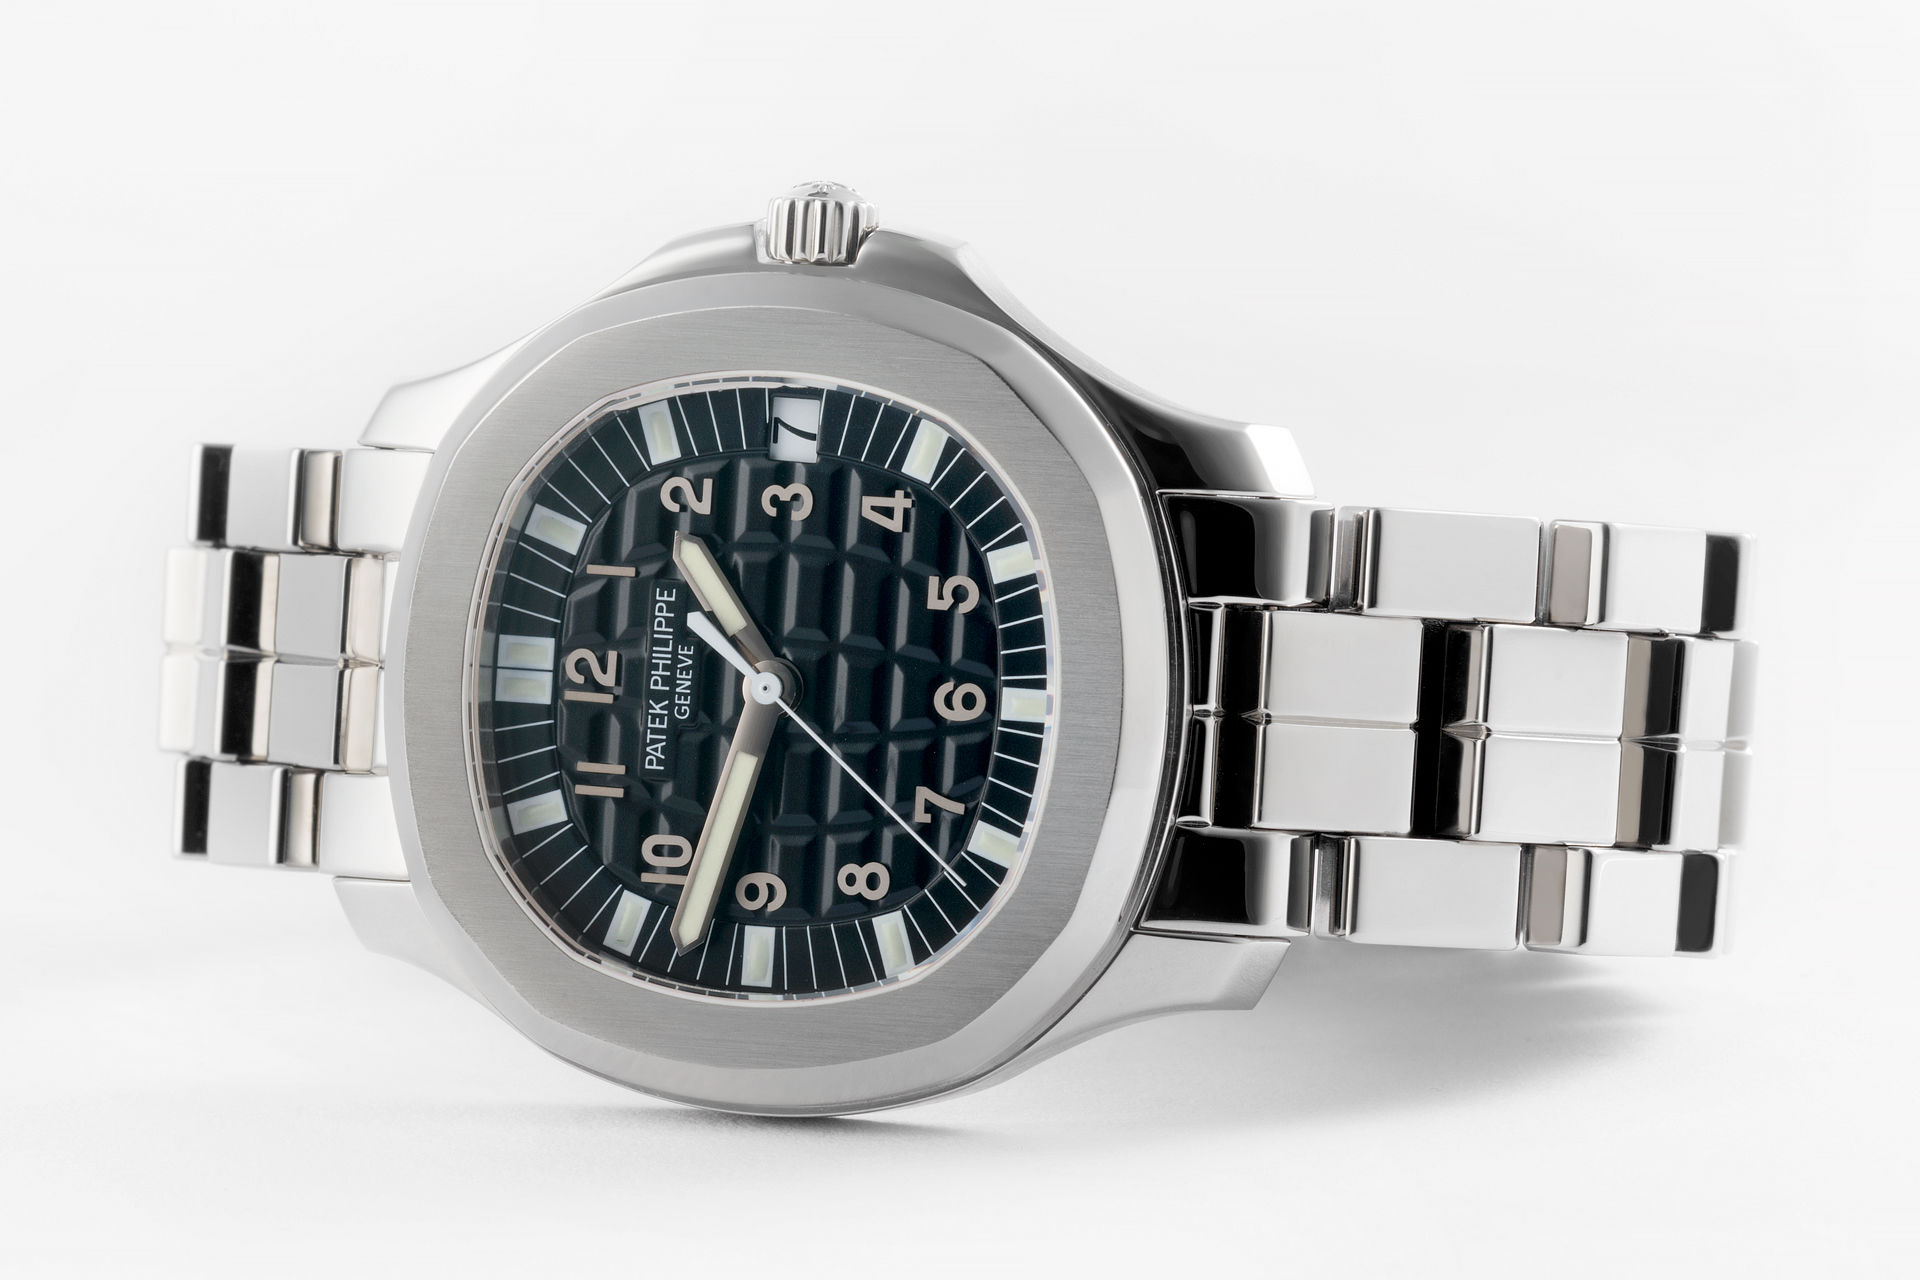 ref 5065A-001 | 37mm Box and Papers | Patek Philippe Aquanaut